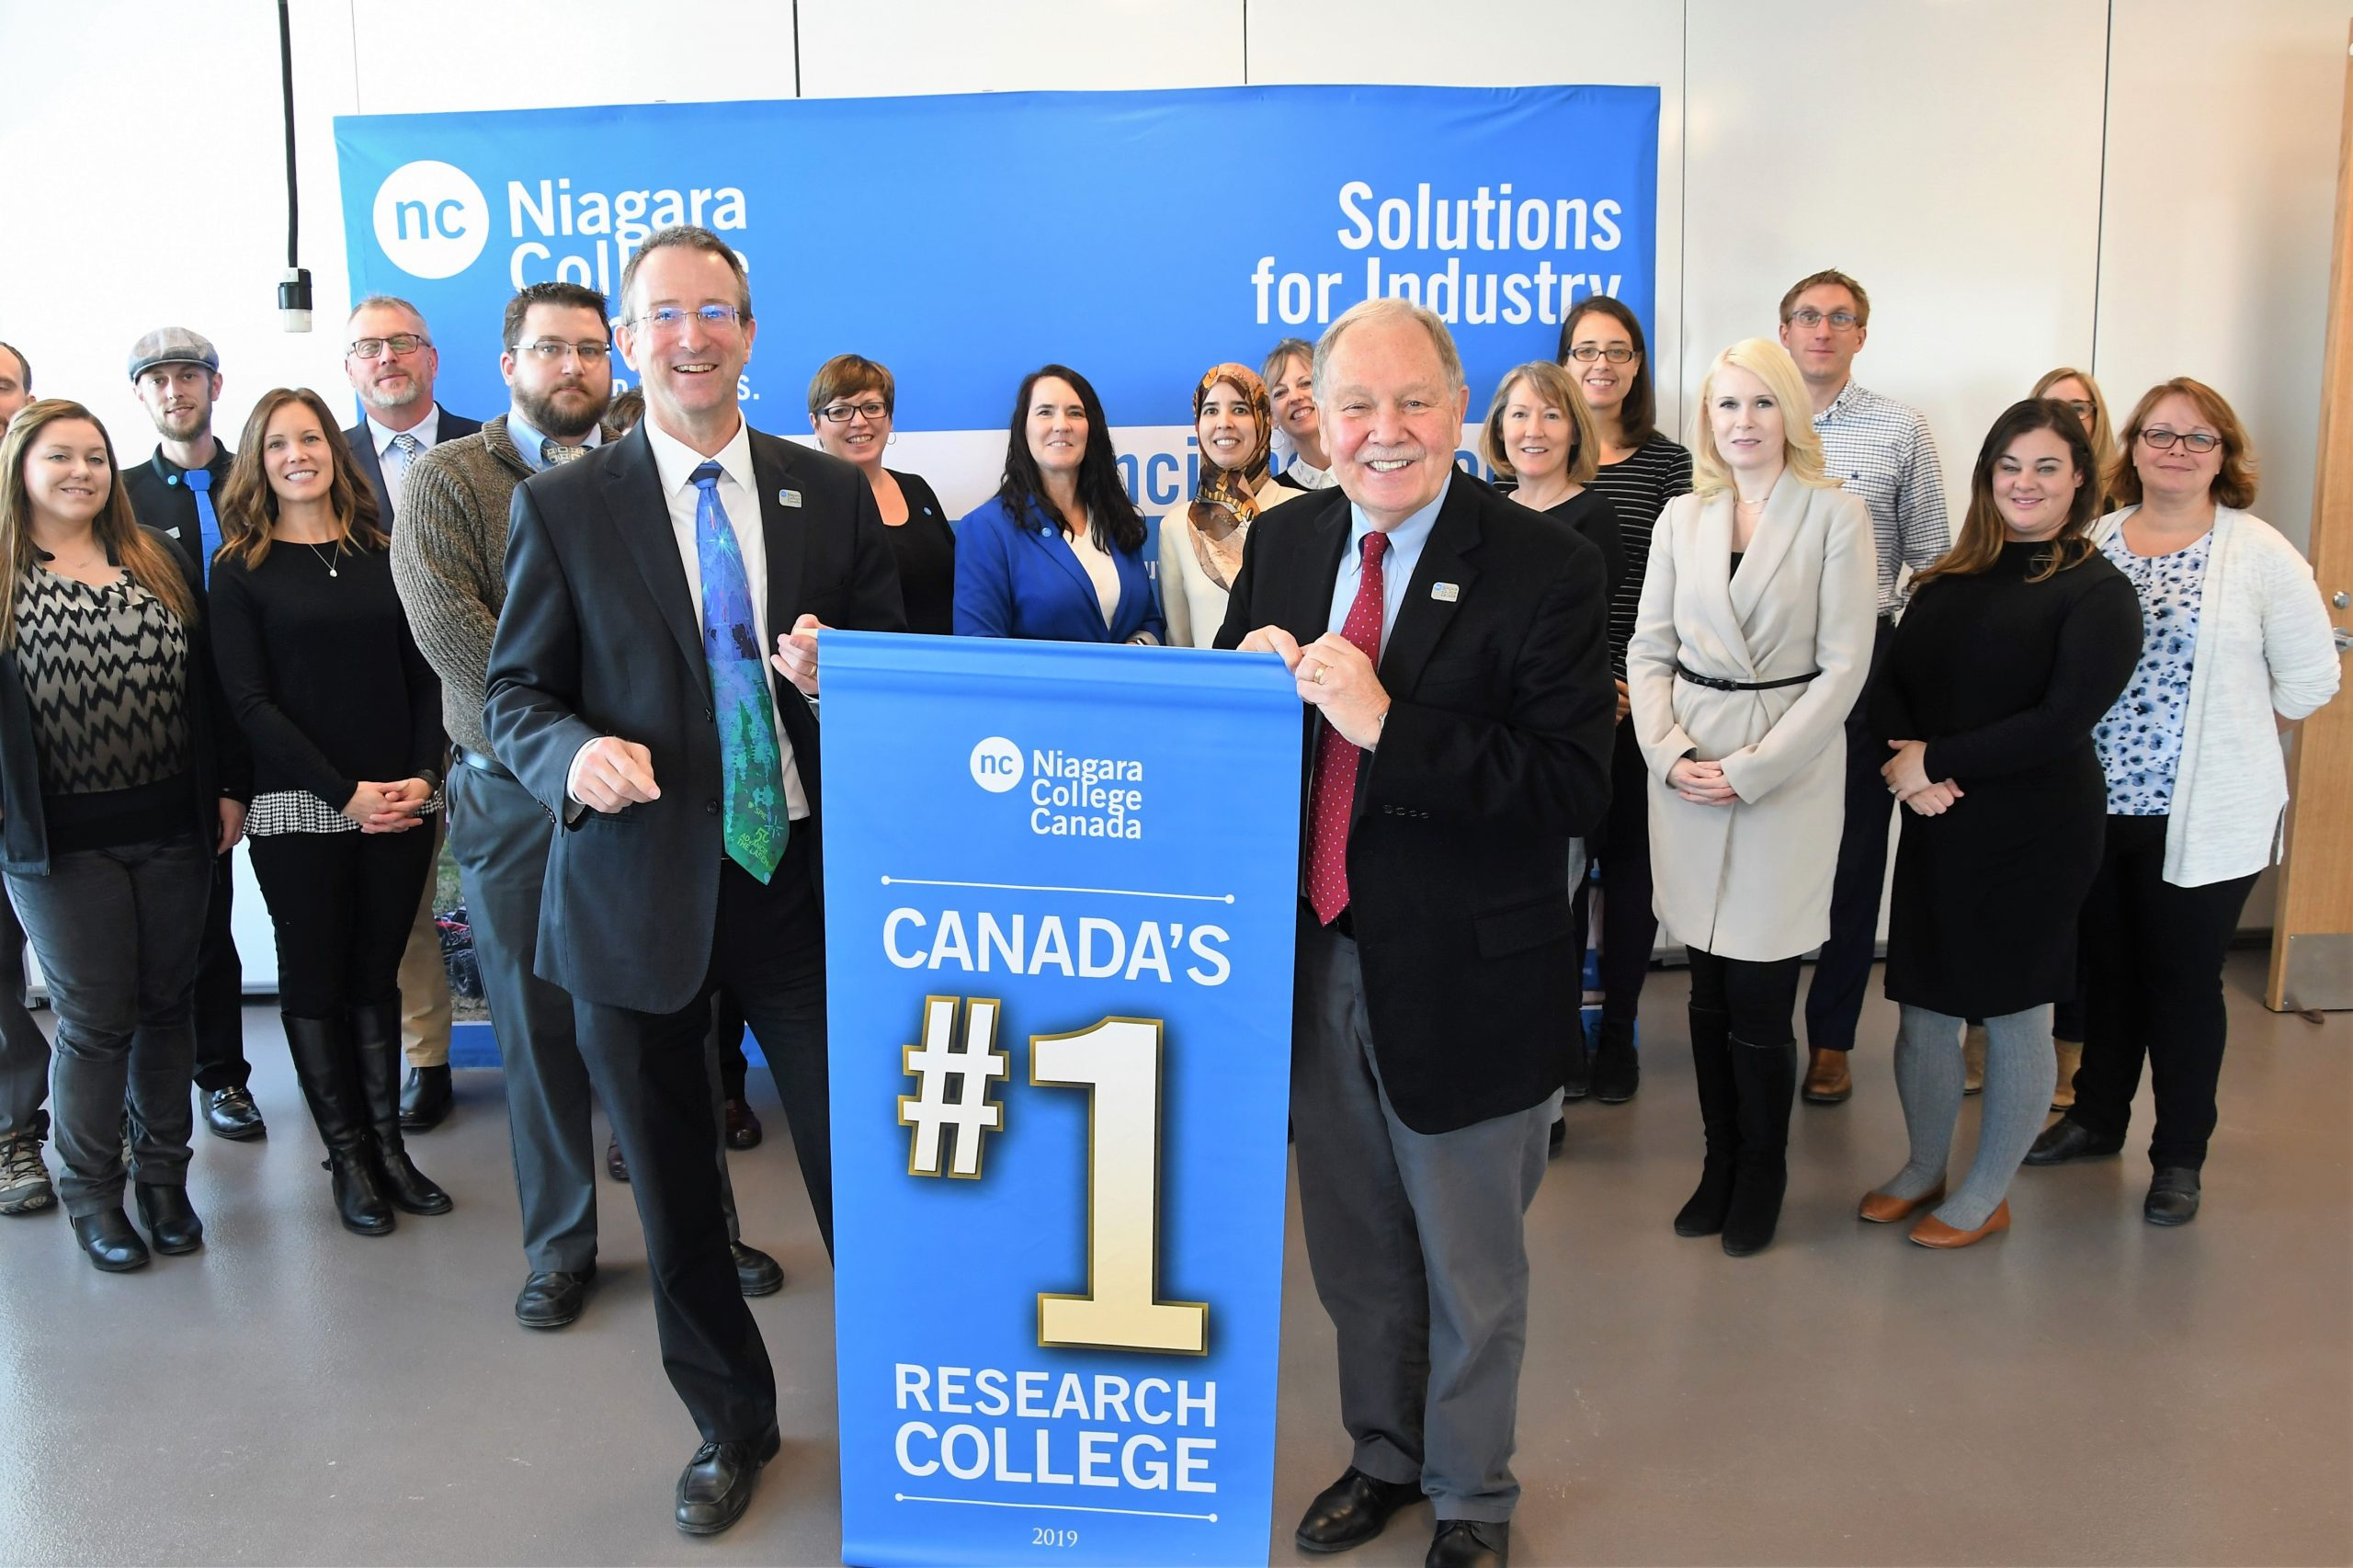 On November 12, Niagara College announces its number one ranking in Research Infosource Inc.'s Top 50 Research Colleges. President Dan Patterson (front right) and VP Research, Innovation & Strategic Initiatives Marc Nantel (front left) hold up a banner announcing the good news as they gather with staff members from NC's Research & Innovation division.